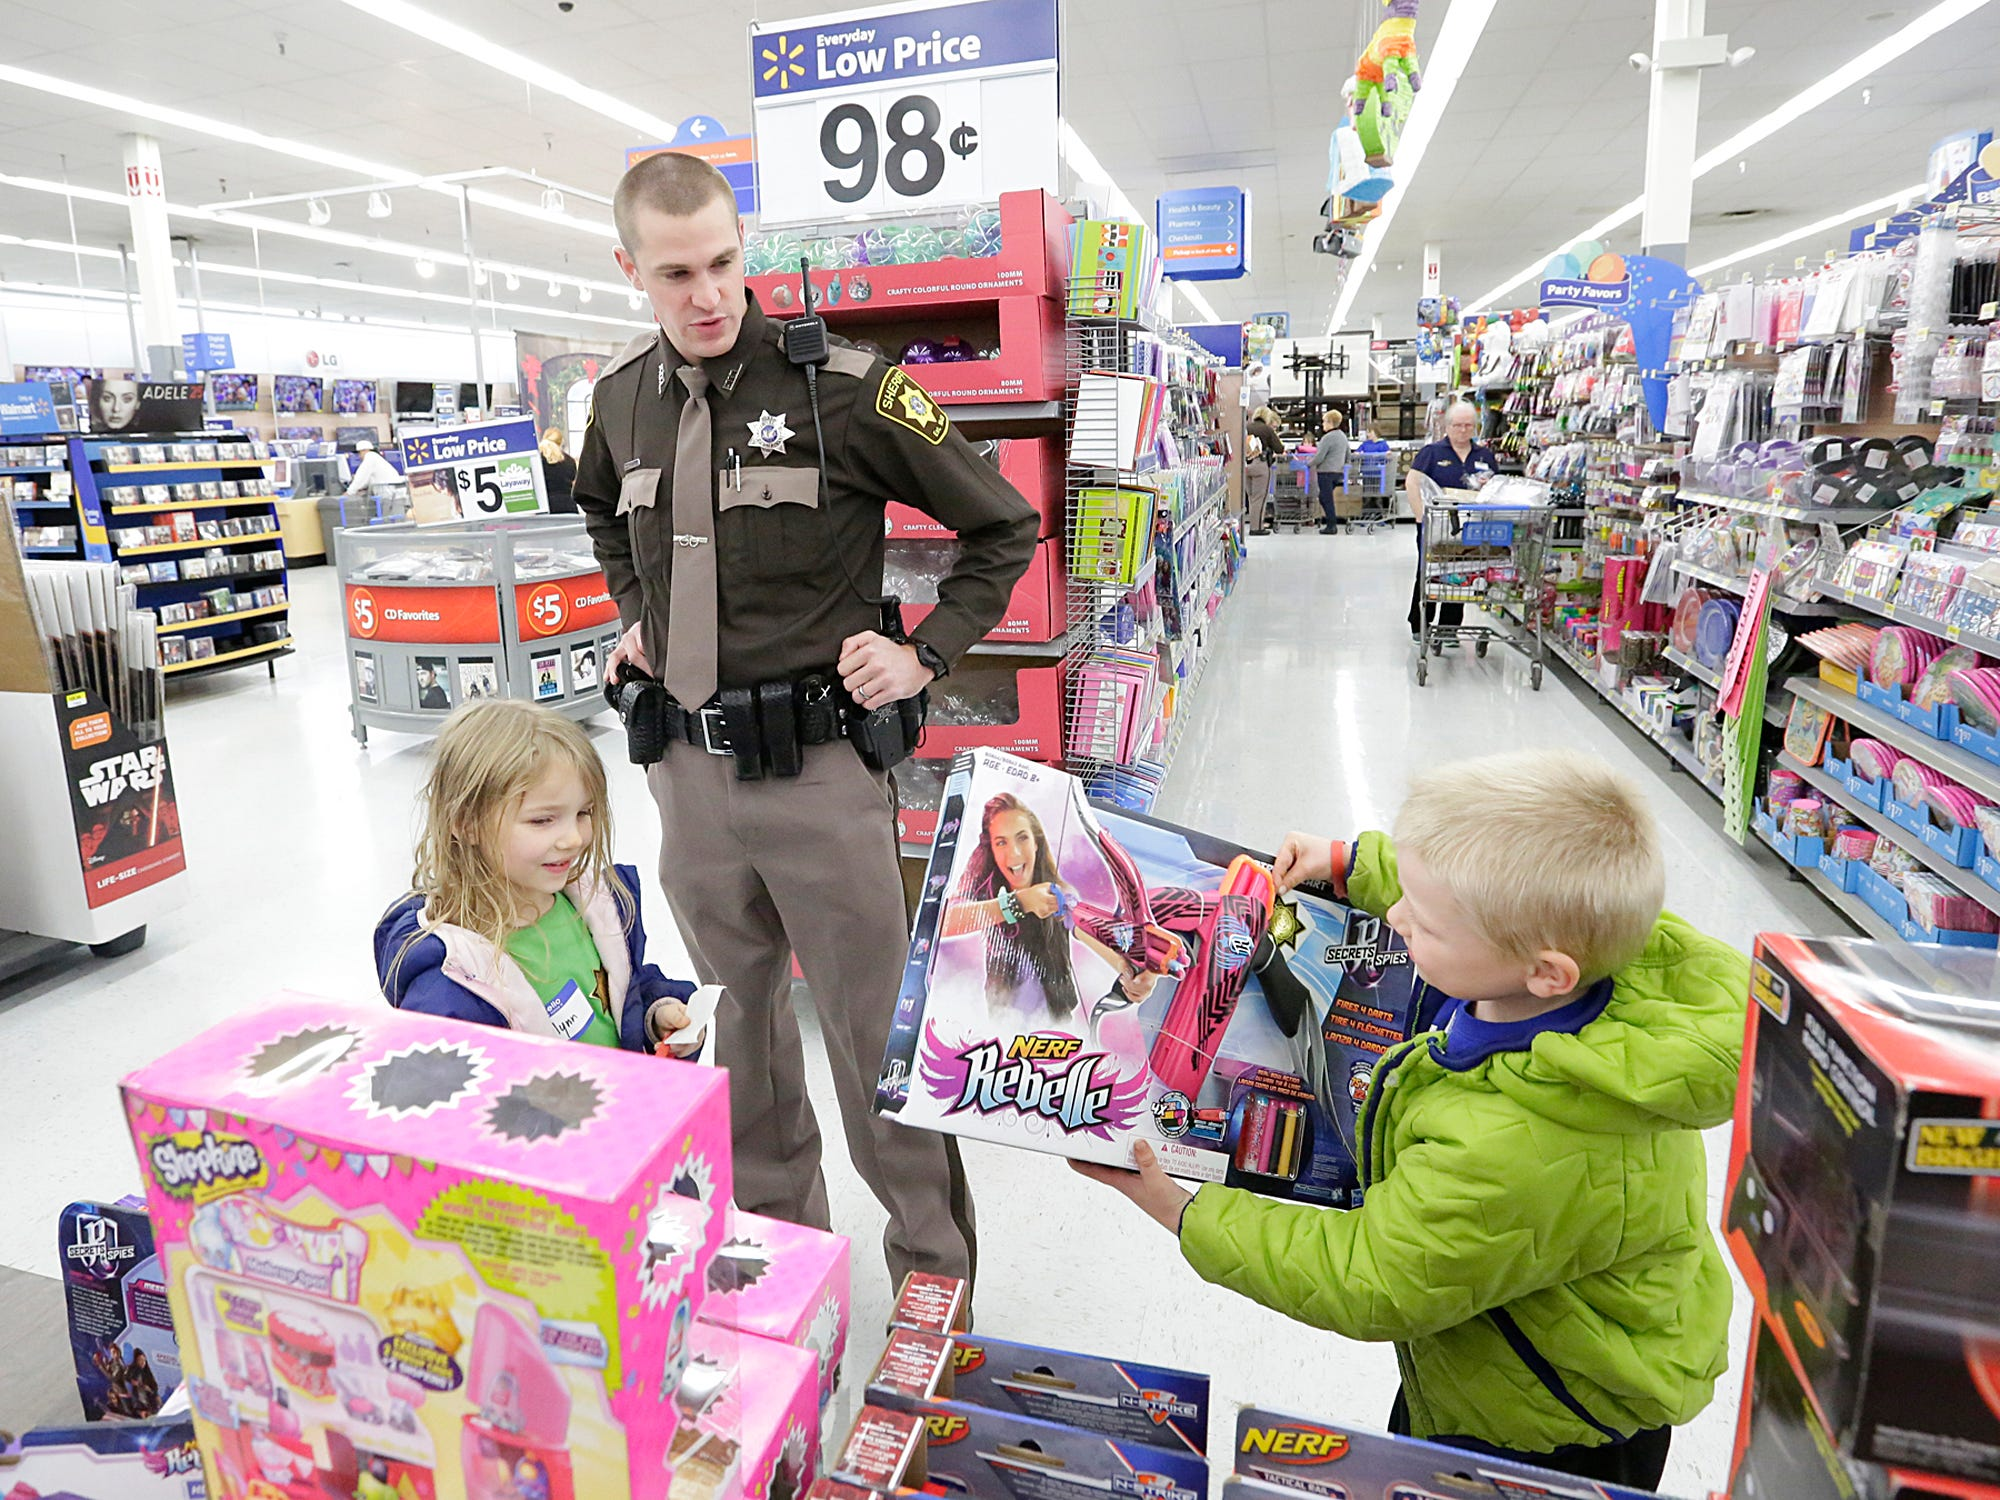 Marathon County Police Plan Shop With A Cop At Walmart For Kids In Social  Services